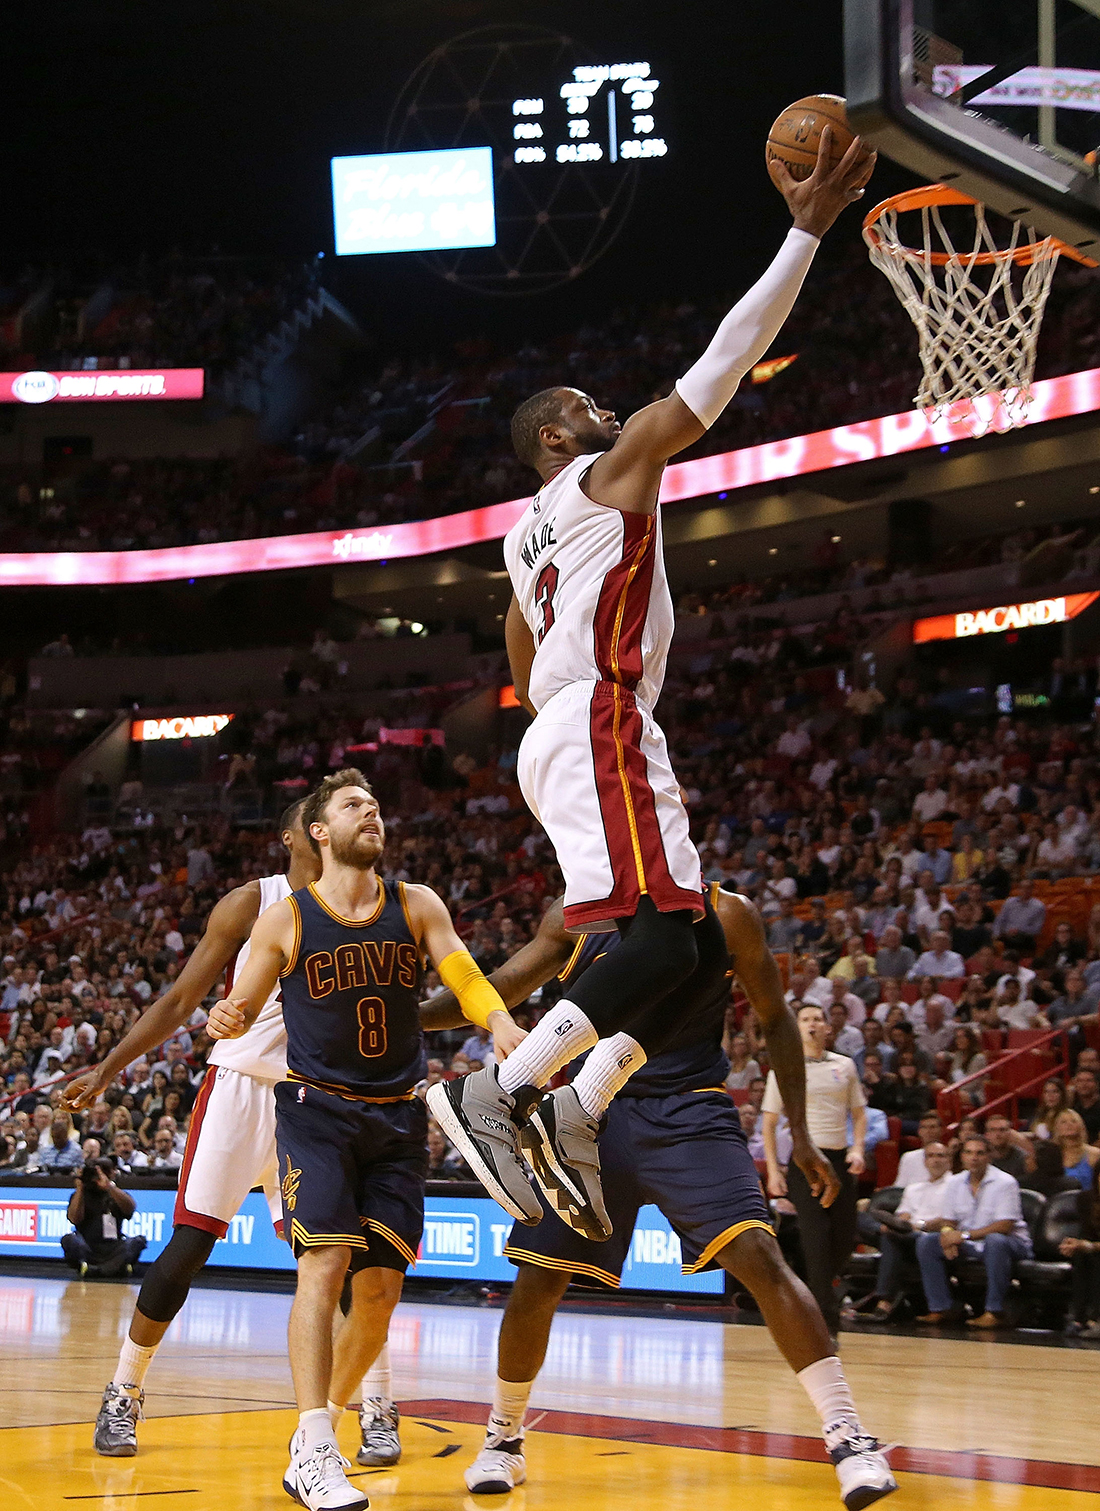 Dwyane Wade Photo by Mike Ehrmann/Getty Images